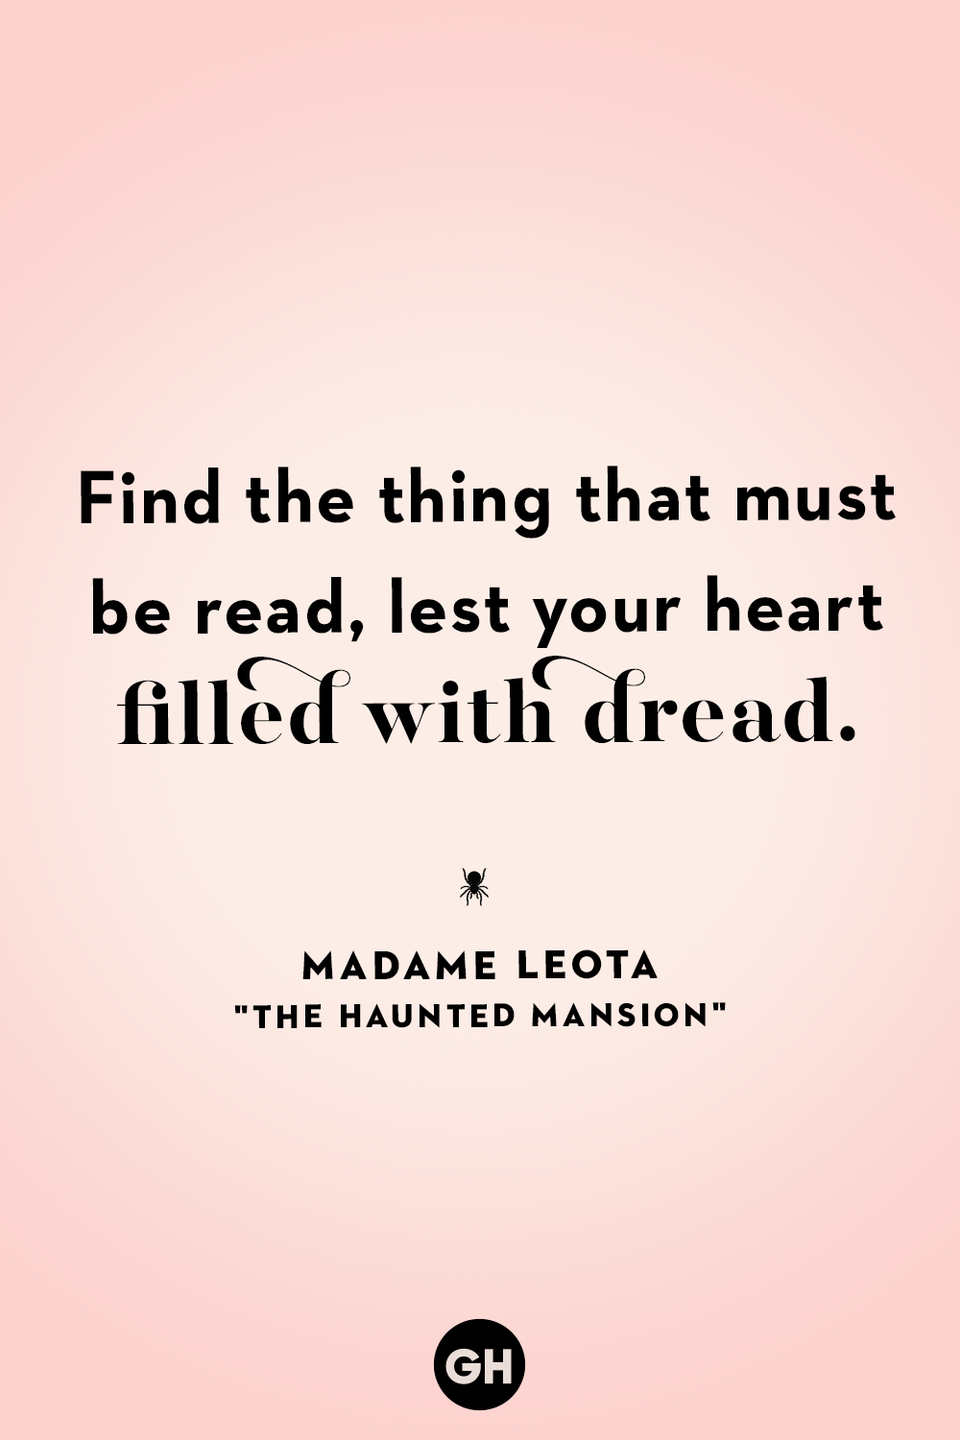 <p>Find the thing that must be read, lest your heart be filled with dread.</p>